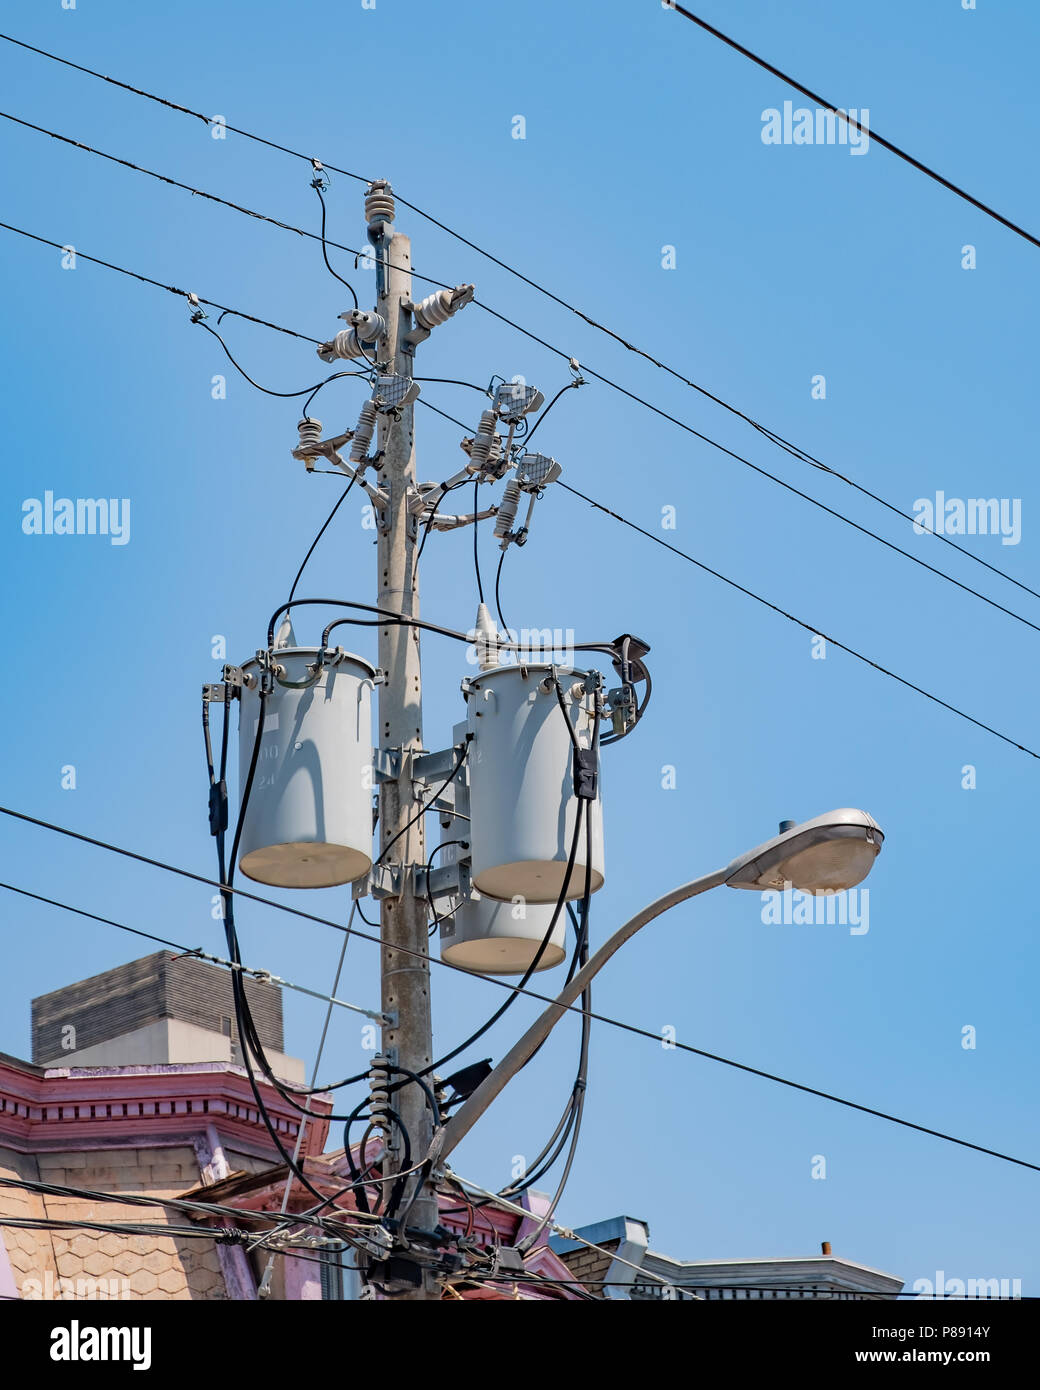 Part of the overhead electrical grid of Toronto Ontario Canada. - Stock Image